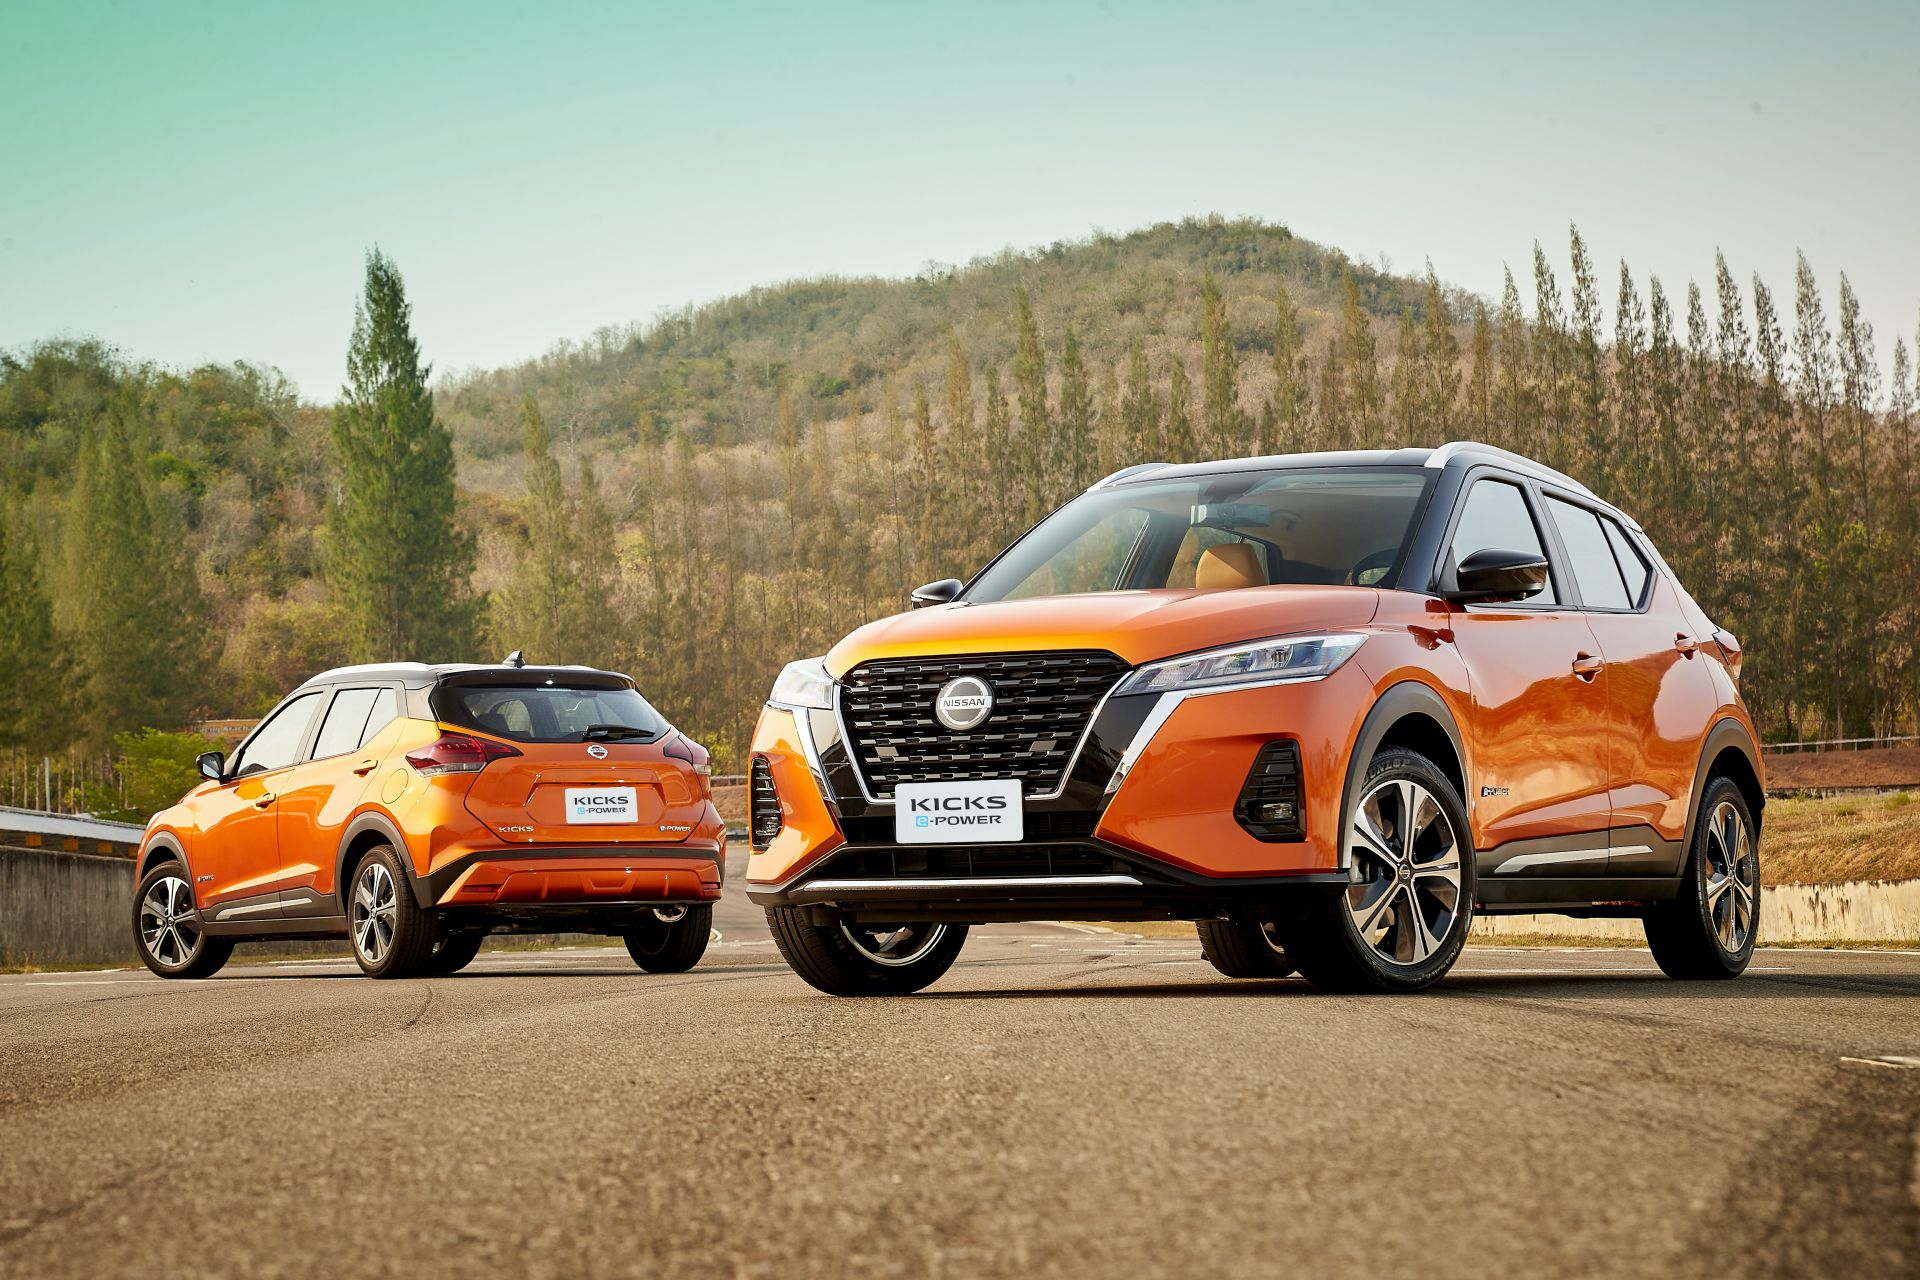 Nissan-Kicks-e-Power-facelift-2021-1